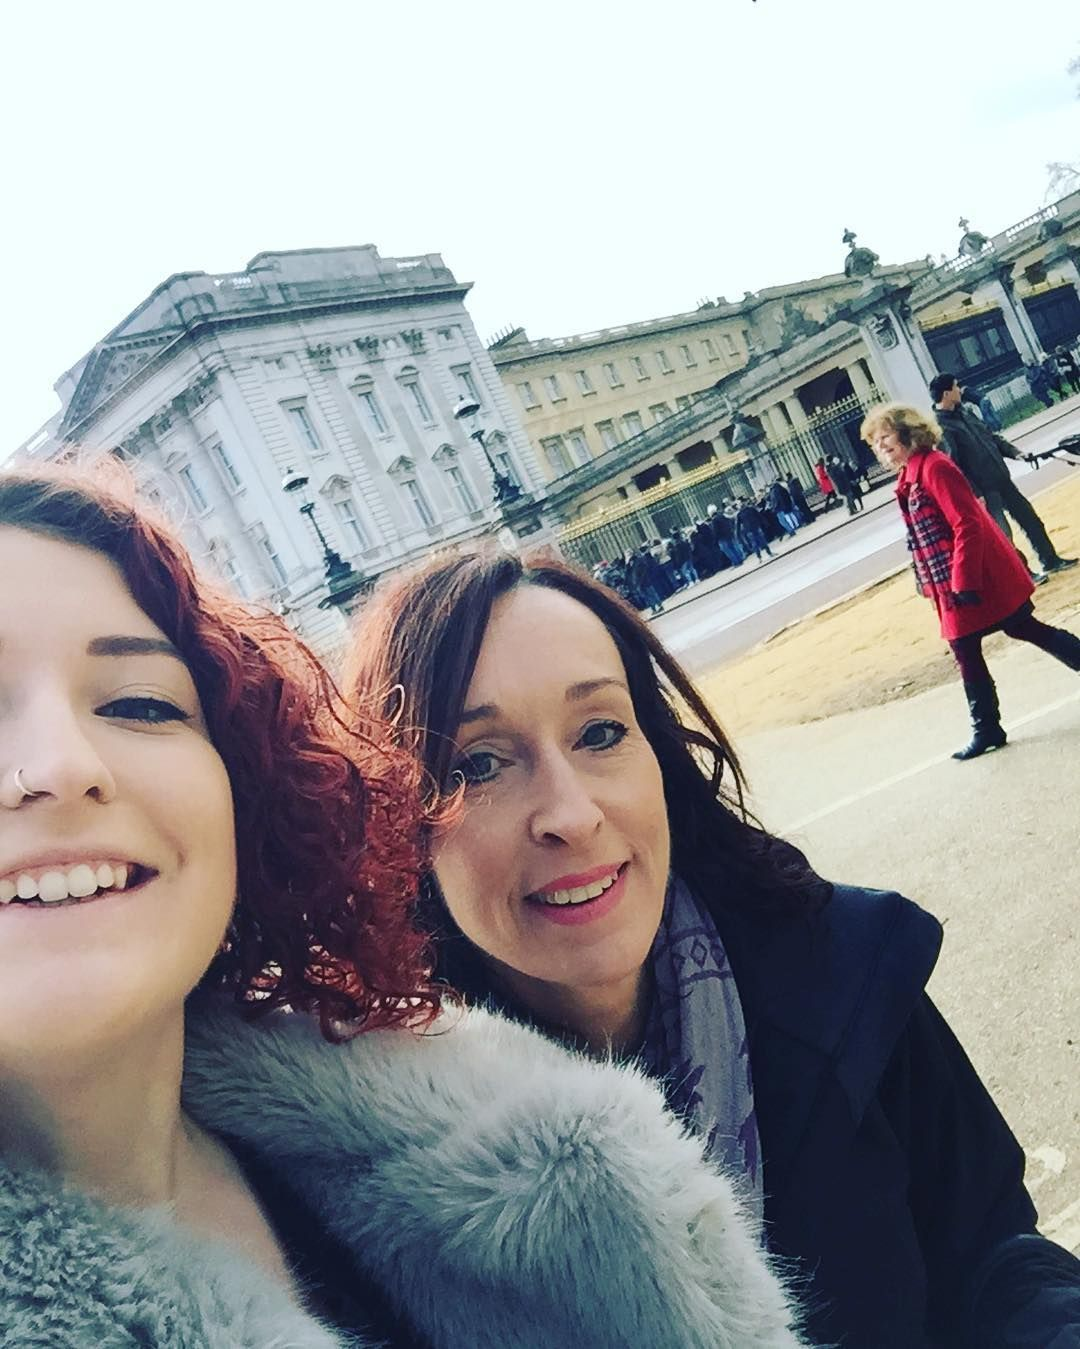 Doing tourist things with Mum on Mother's Day by tegandenchfield